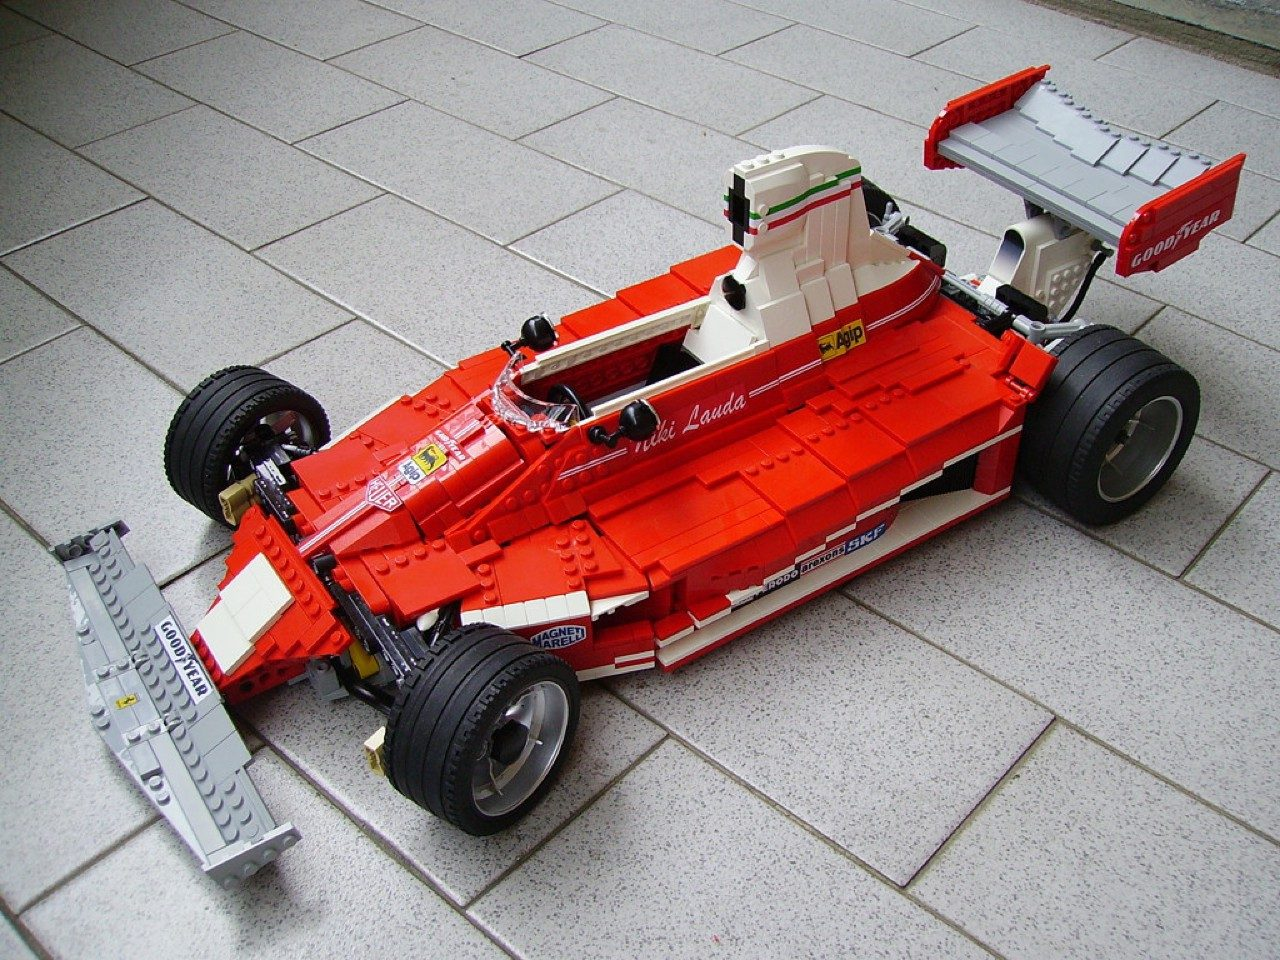 foto divers lego formule 1 autos lego f1 cars lotus mclaren ferrari 0000. Black Bedroom Furniture Sets. Home Design Ideas